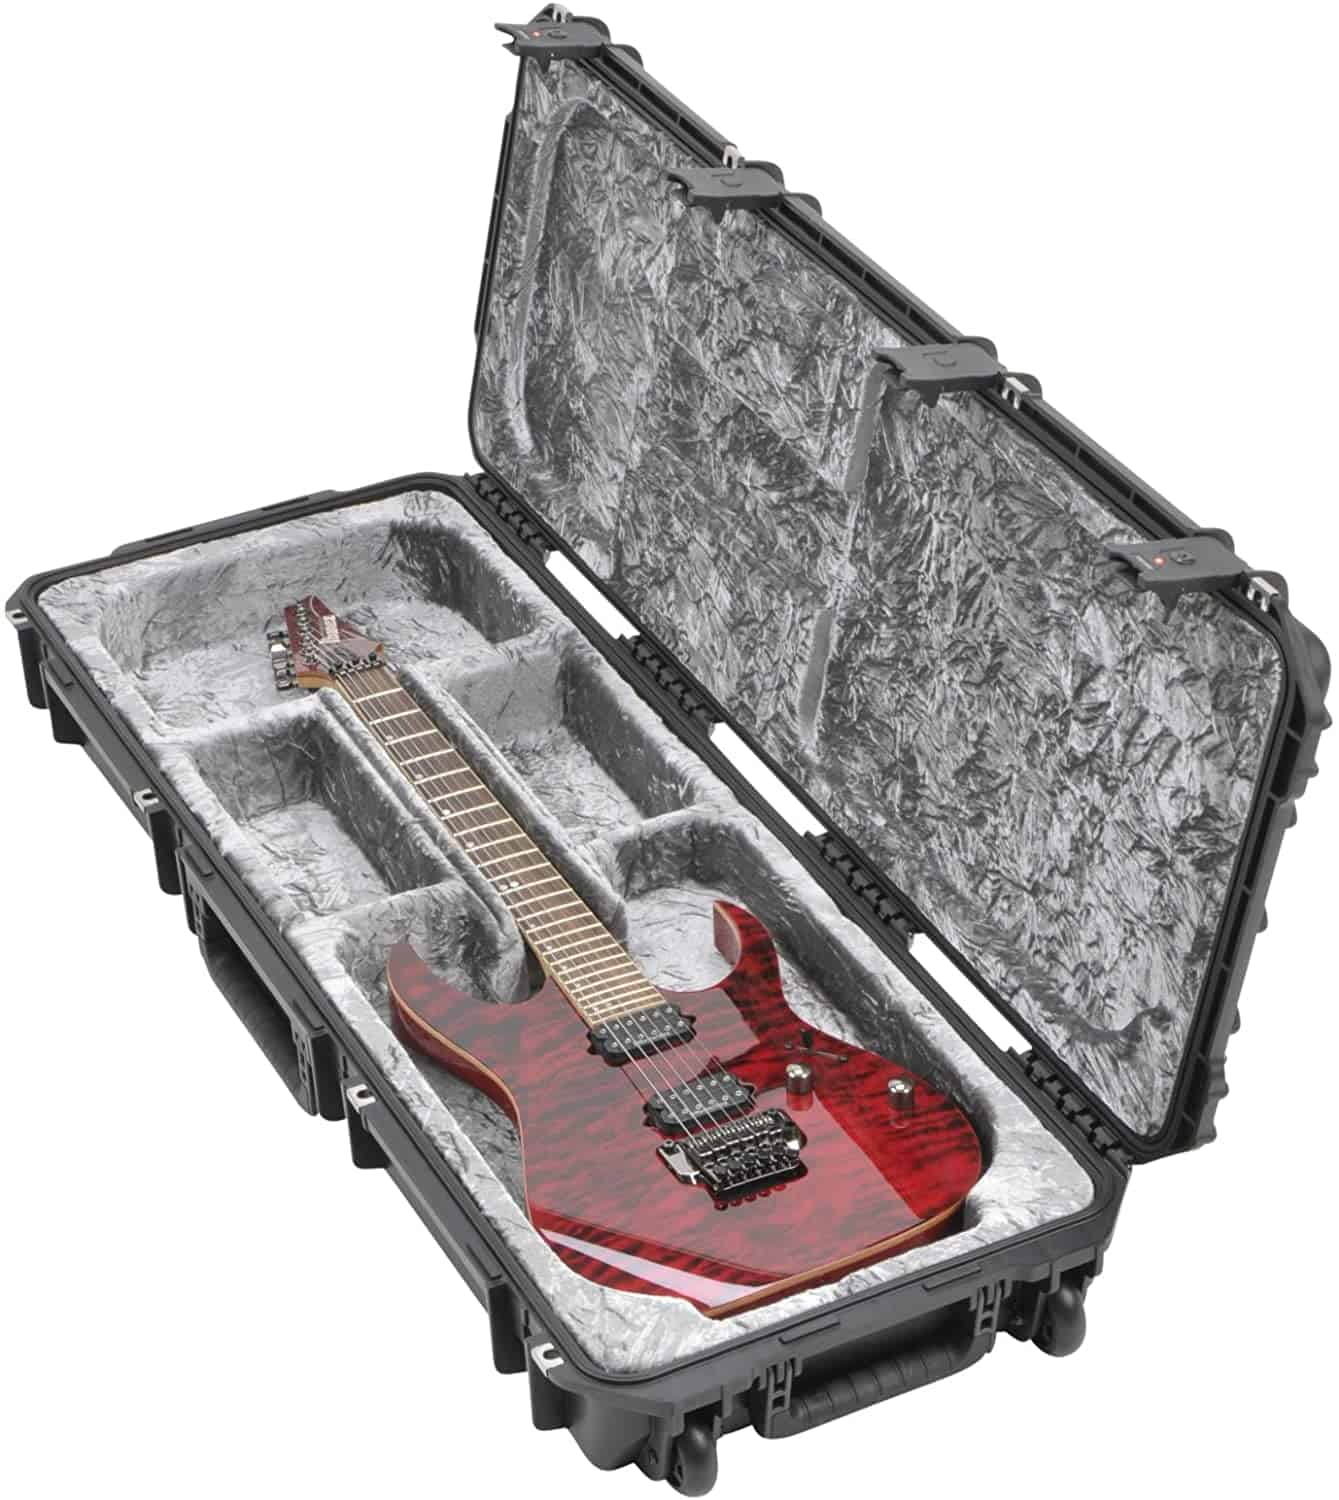 Most durable guitar case & best professional touring case: SKB Injection Molded